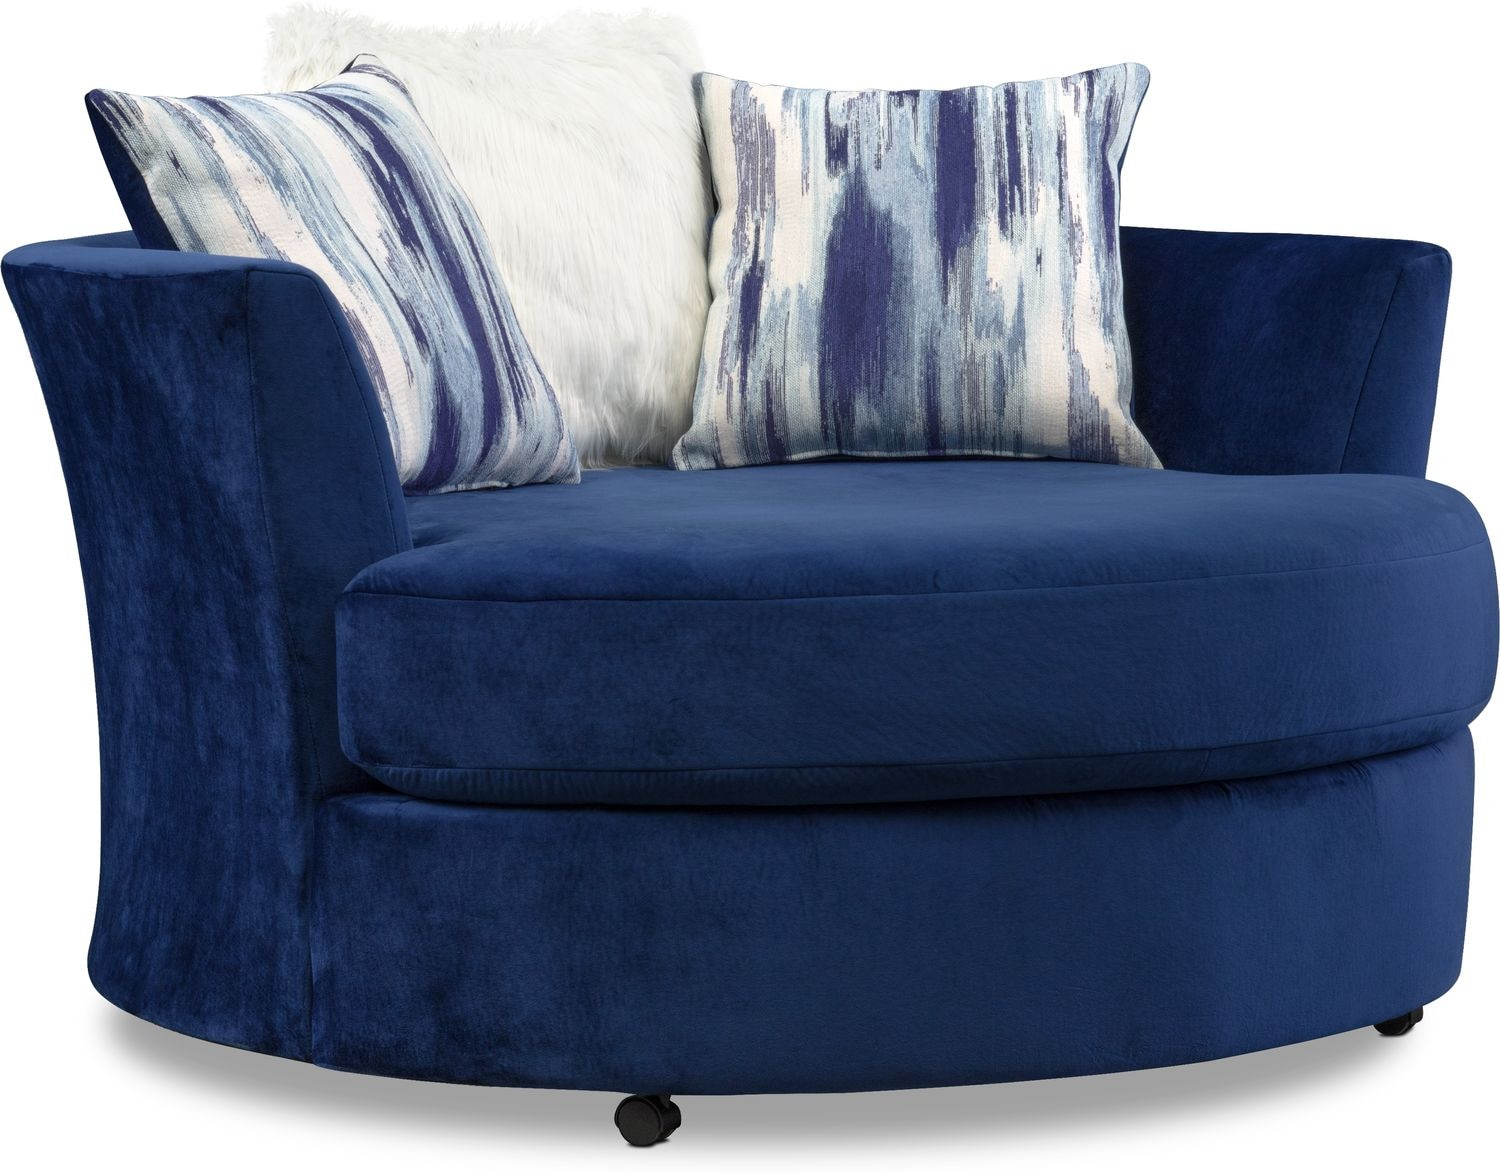 Blue Swivel Chair Cordelle 3 Piece Sectional And Swivel Chair Set Blue